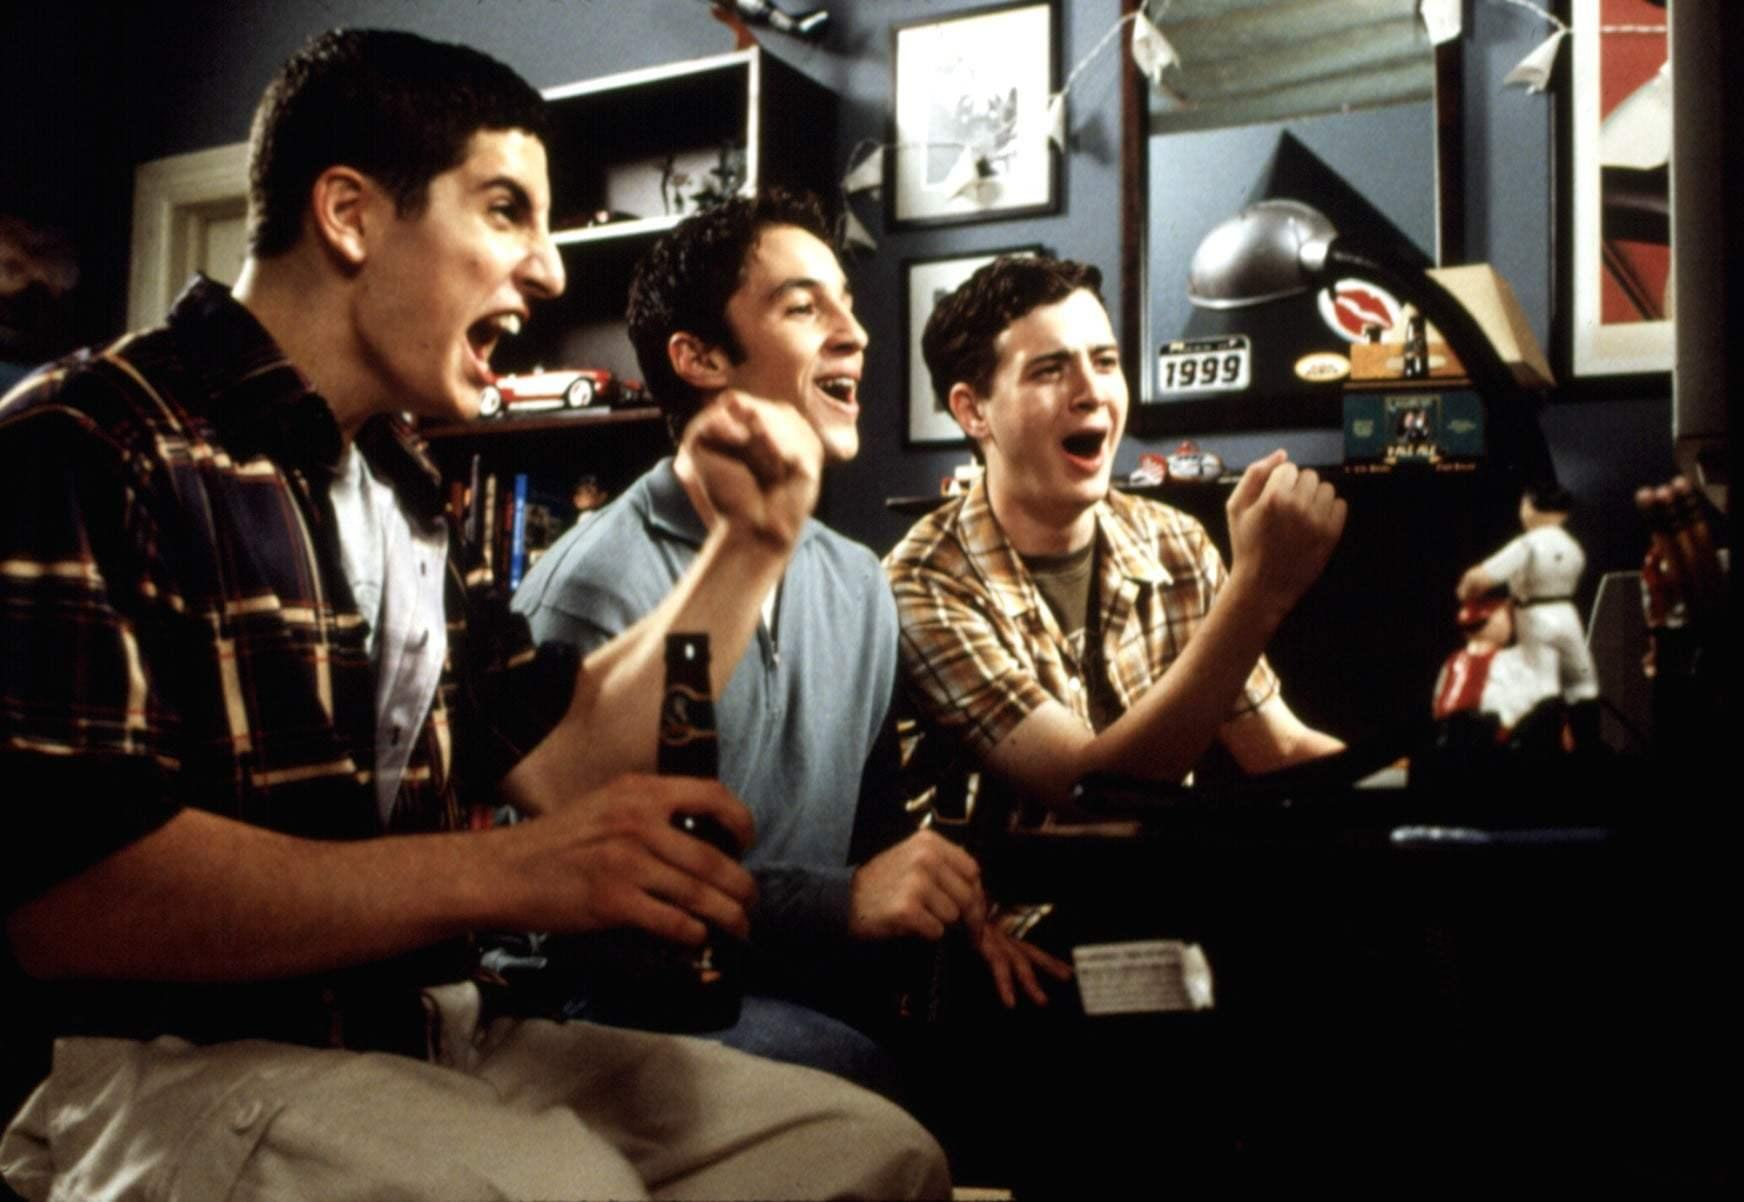 American Pie Band Camp Scene classic film review: 20 years later, american pie comes